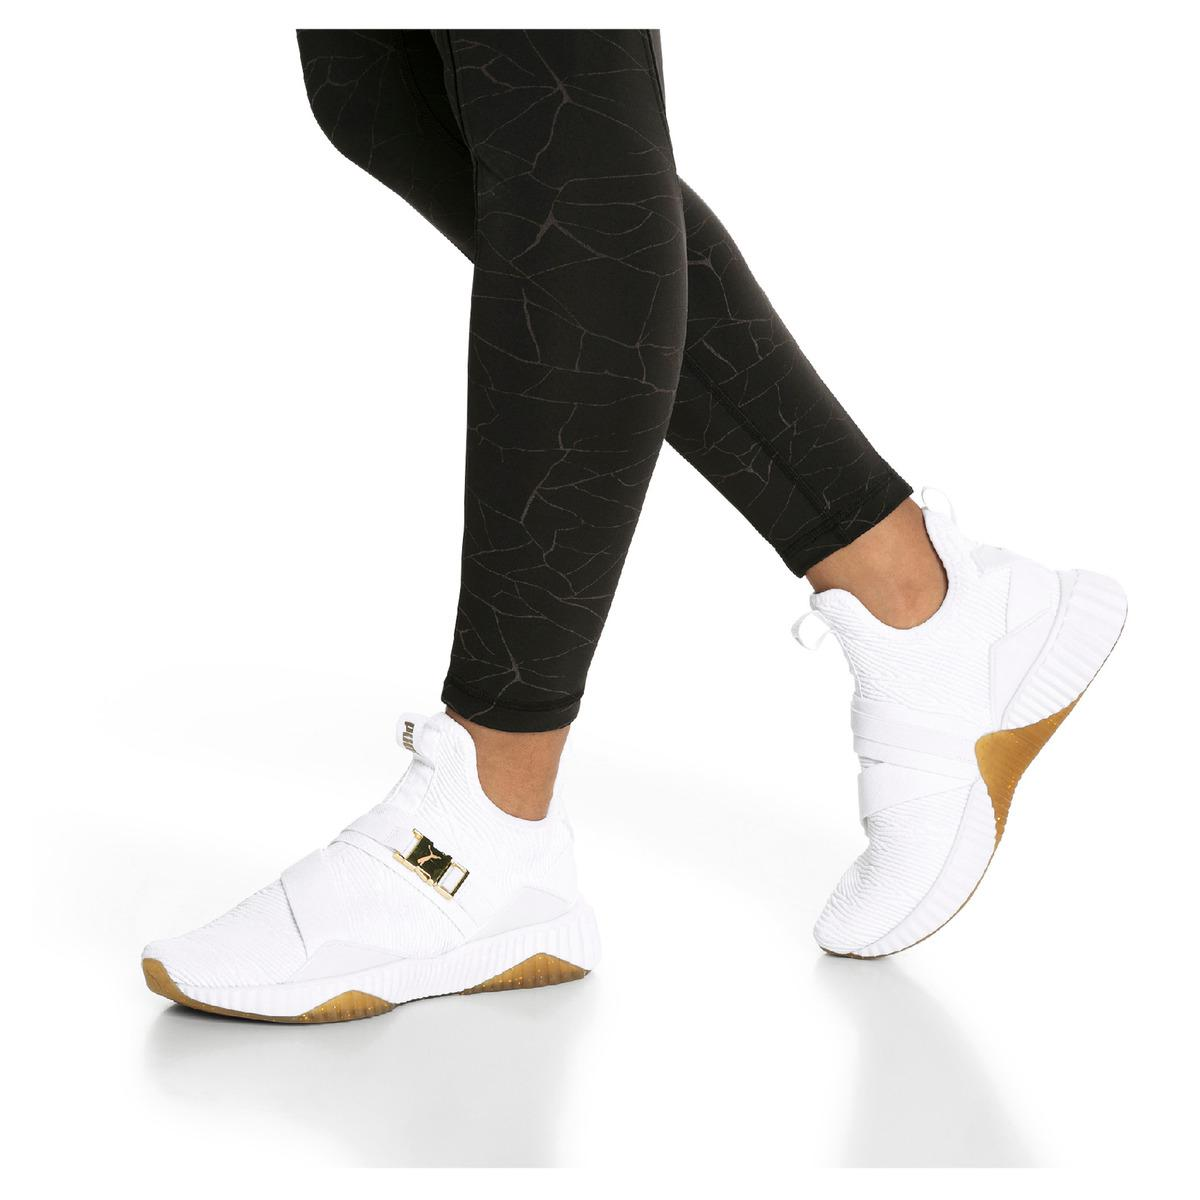 puma defy mid luxe wn's - 63% OFF